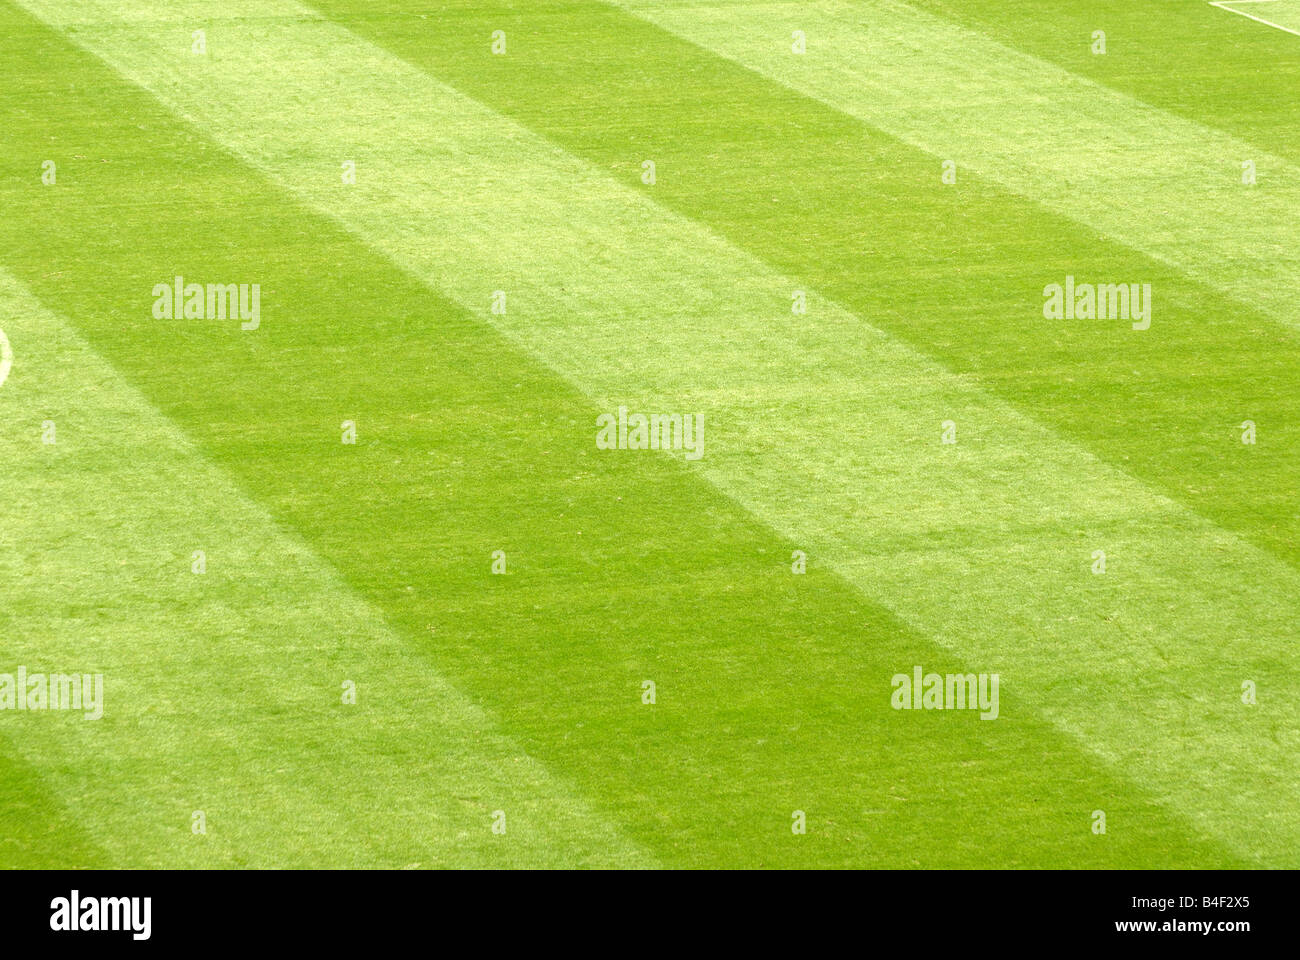 Lawn in a football stadium - Stock Image